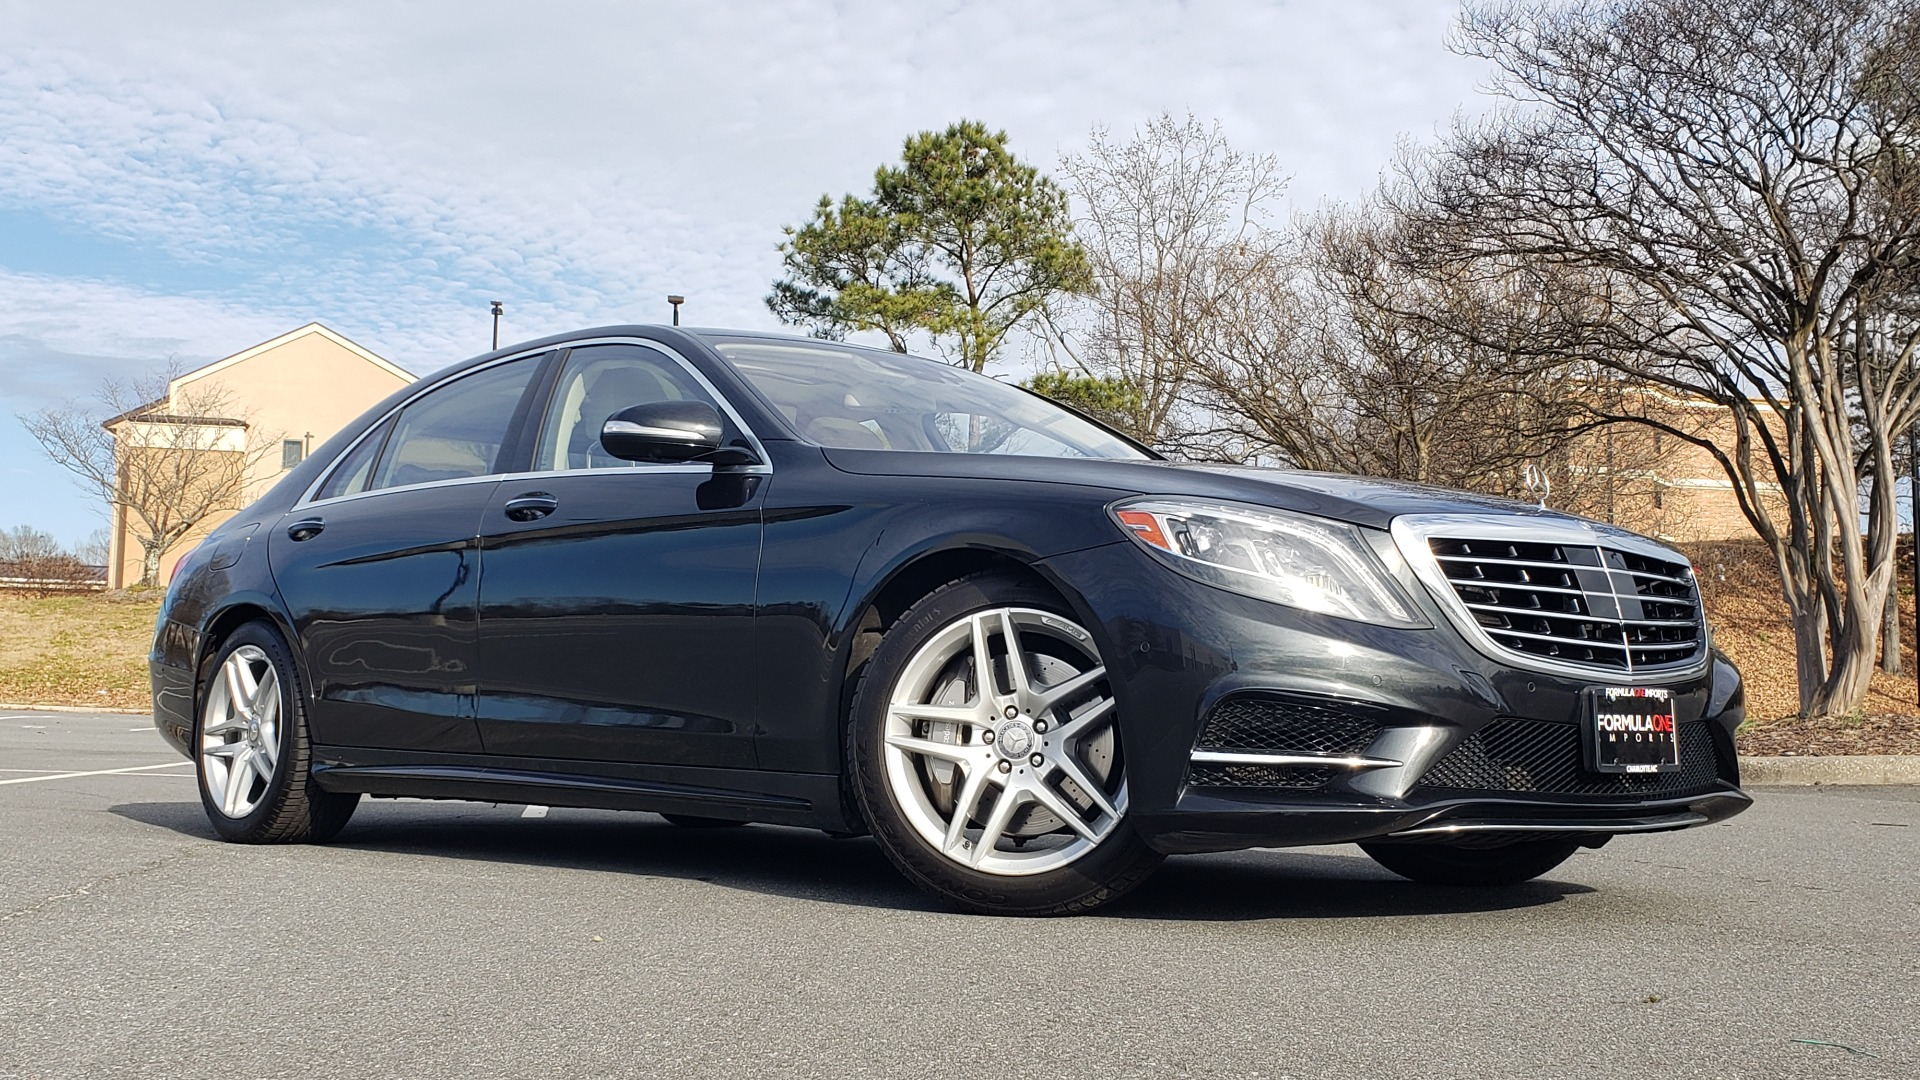 Used 2015 Mercedes-Benz S-CLASS S 550 PREMIUM / SPORT / WARMTH&COMFORT / DRVR ASST / SRND VIEW for sale Sold at Formula Imports in Charlotte NC 28227 10